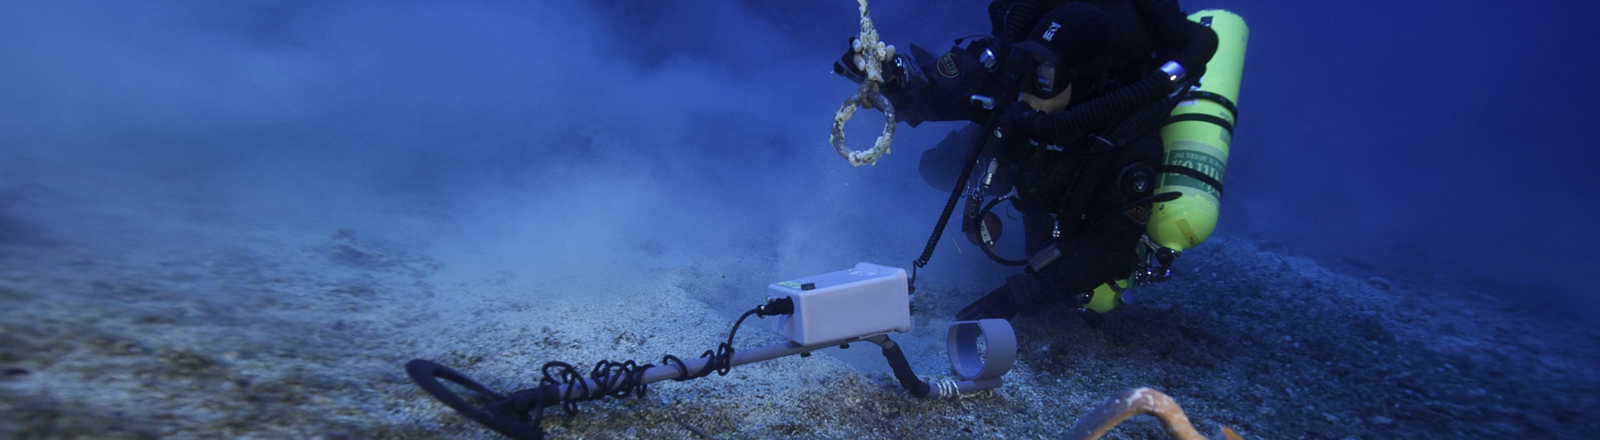 An undated photo released by the Greek Ministry of Culture on 09 October 2014 shows a diver approaching an almost intact pitcher, found at the site of underwater exploration near Antikythera island, central Aegean, Greece. The exploration took place at the site of the famous Antikythe...